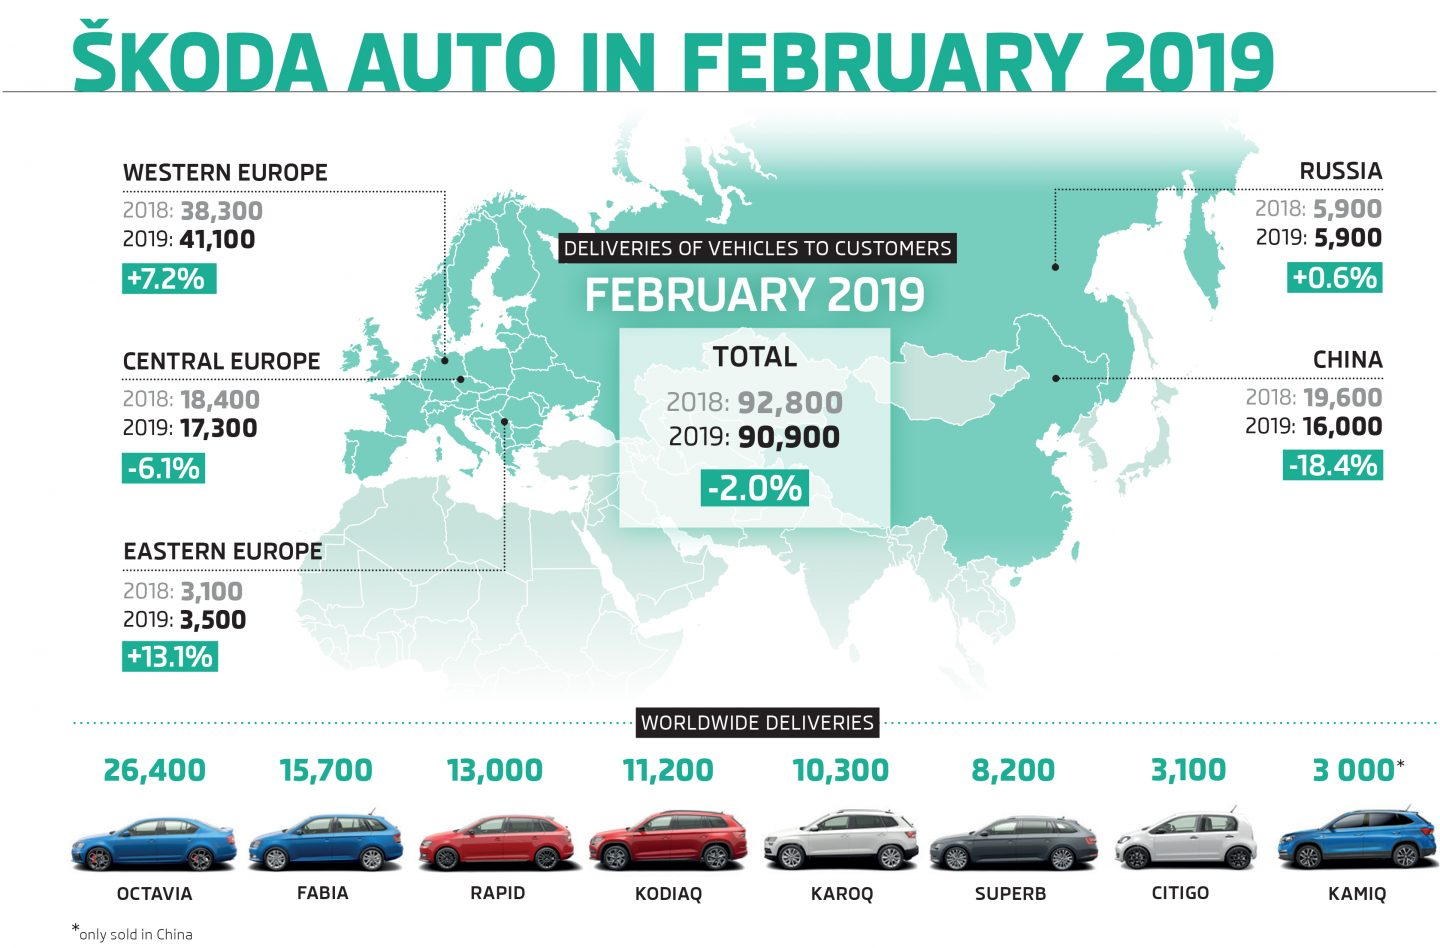 Infographic: ŠKODA delivers 90,900 vehicles in February